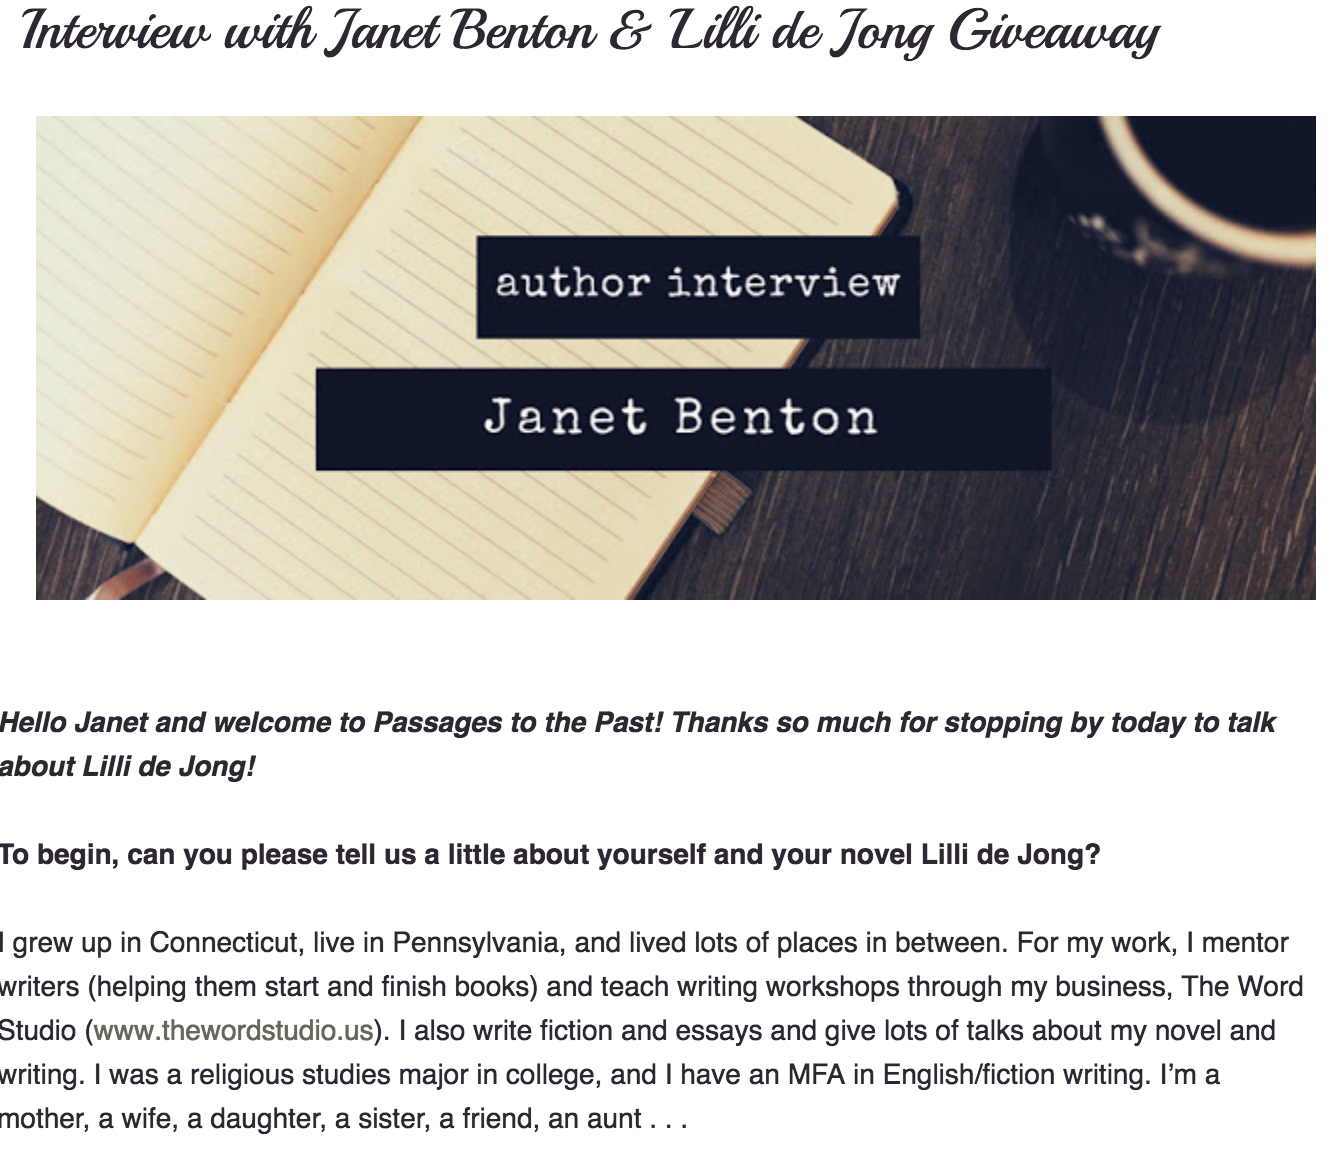 Interview with Janet Benton & Lilli de Jong Giveaway  By Amy Bruno for  Passages to the Past